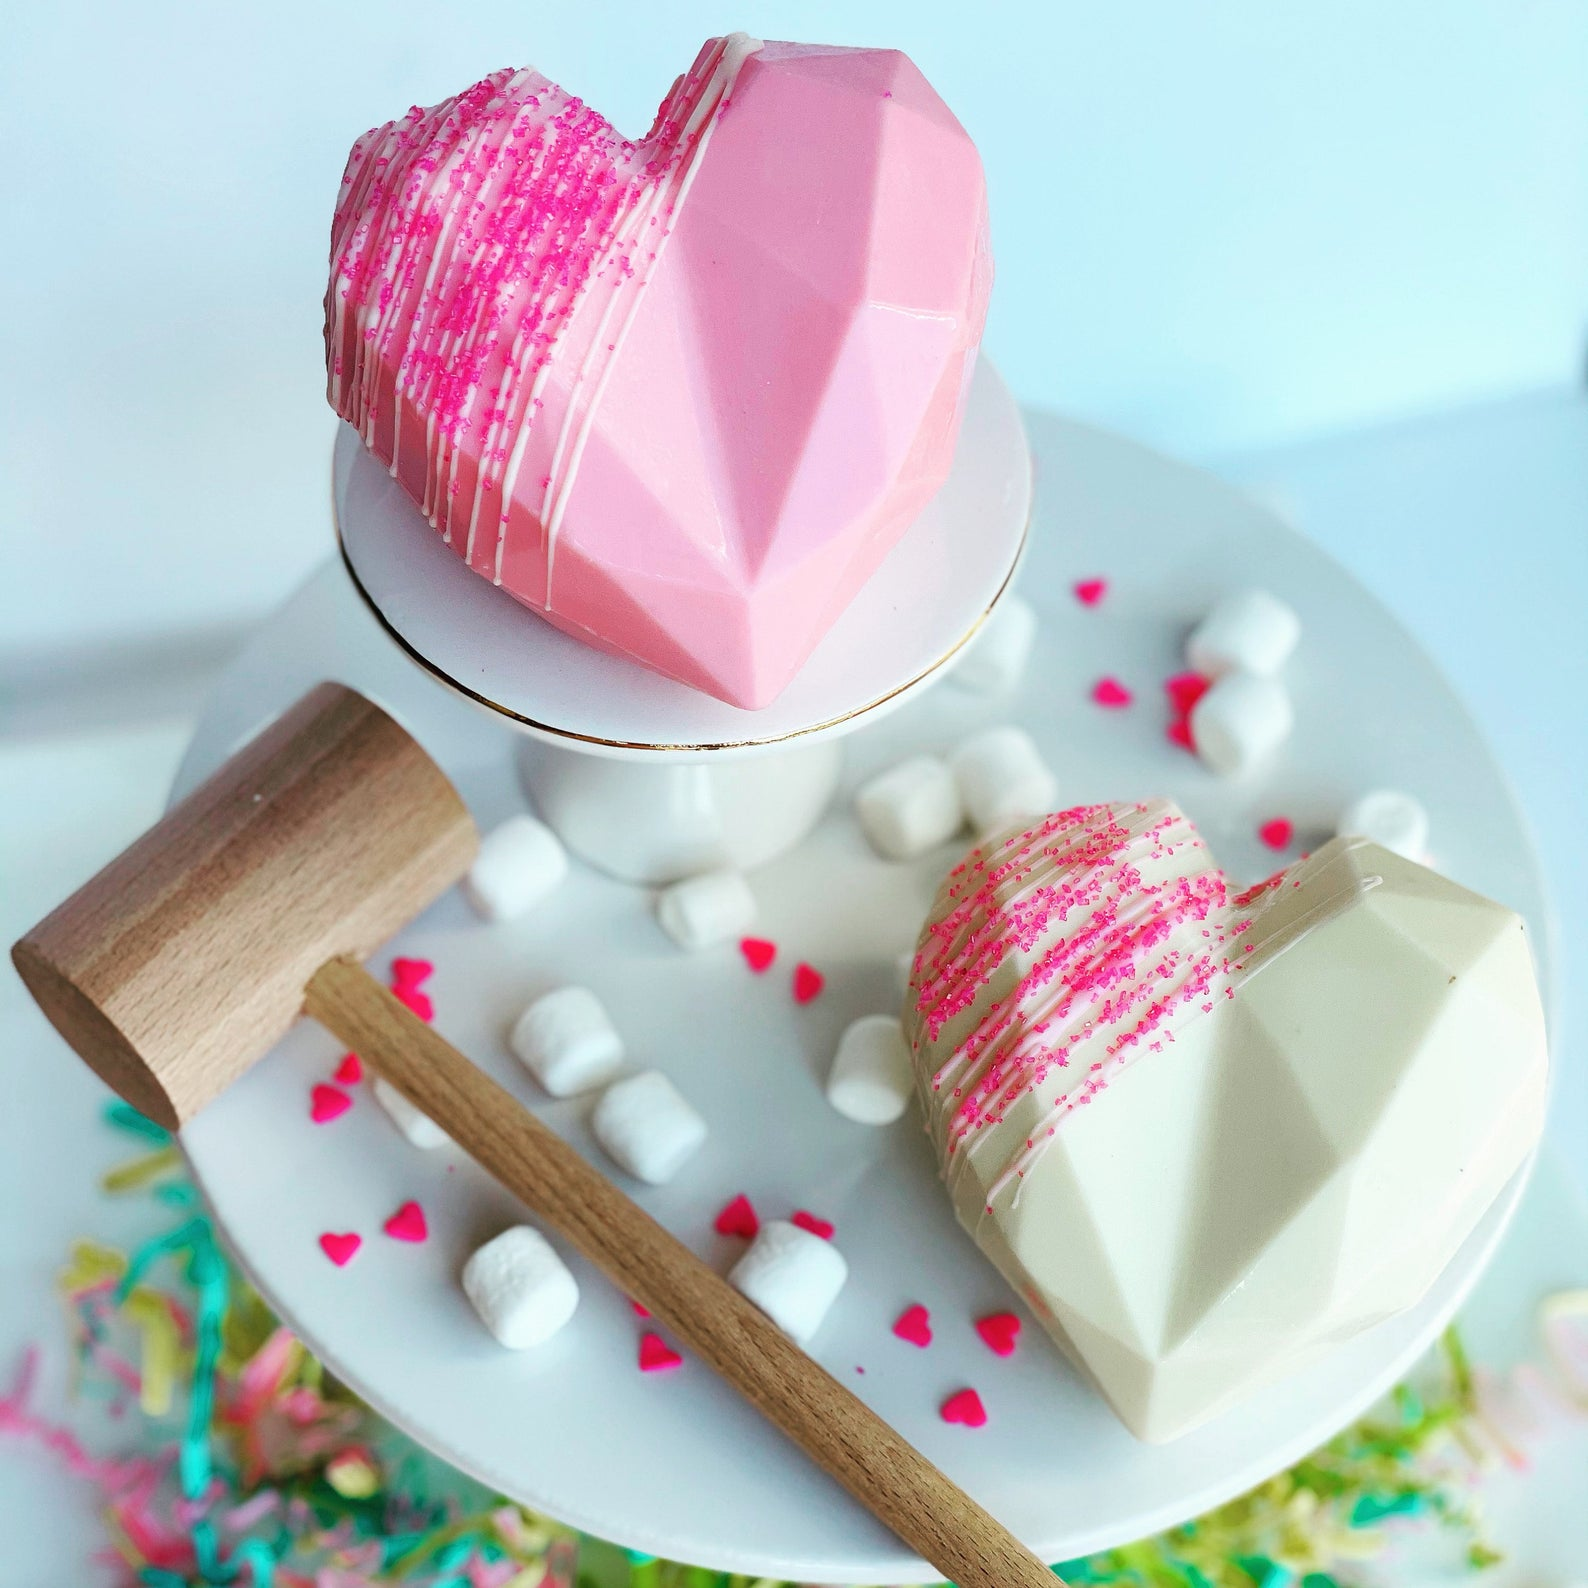 pink and white chocolate hearts with a hammer to smash them open